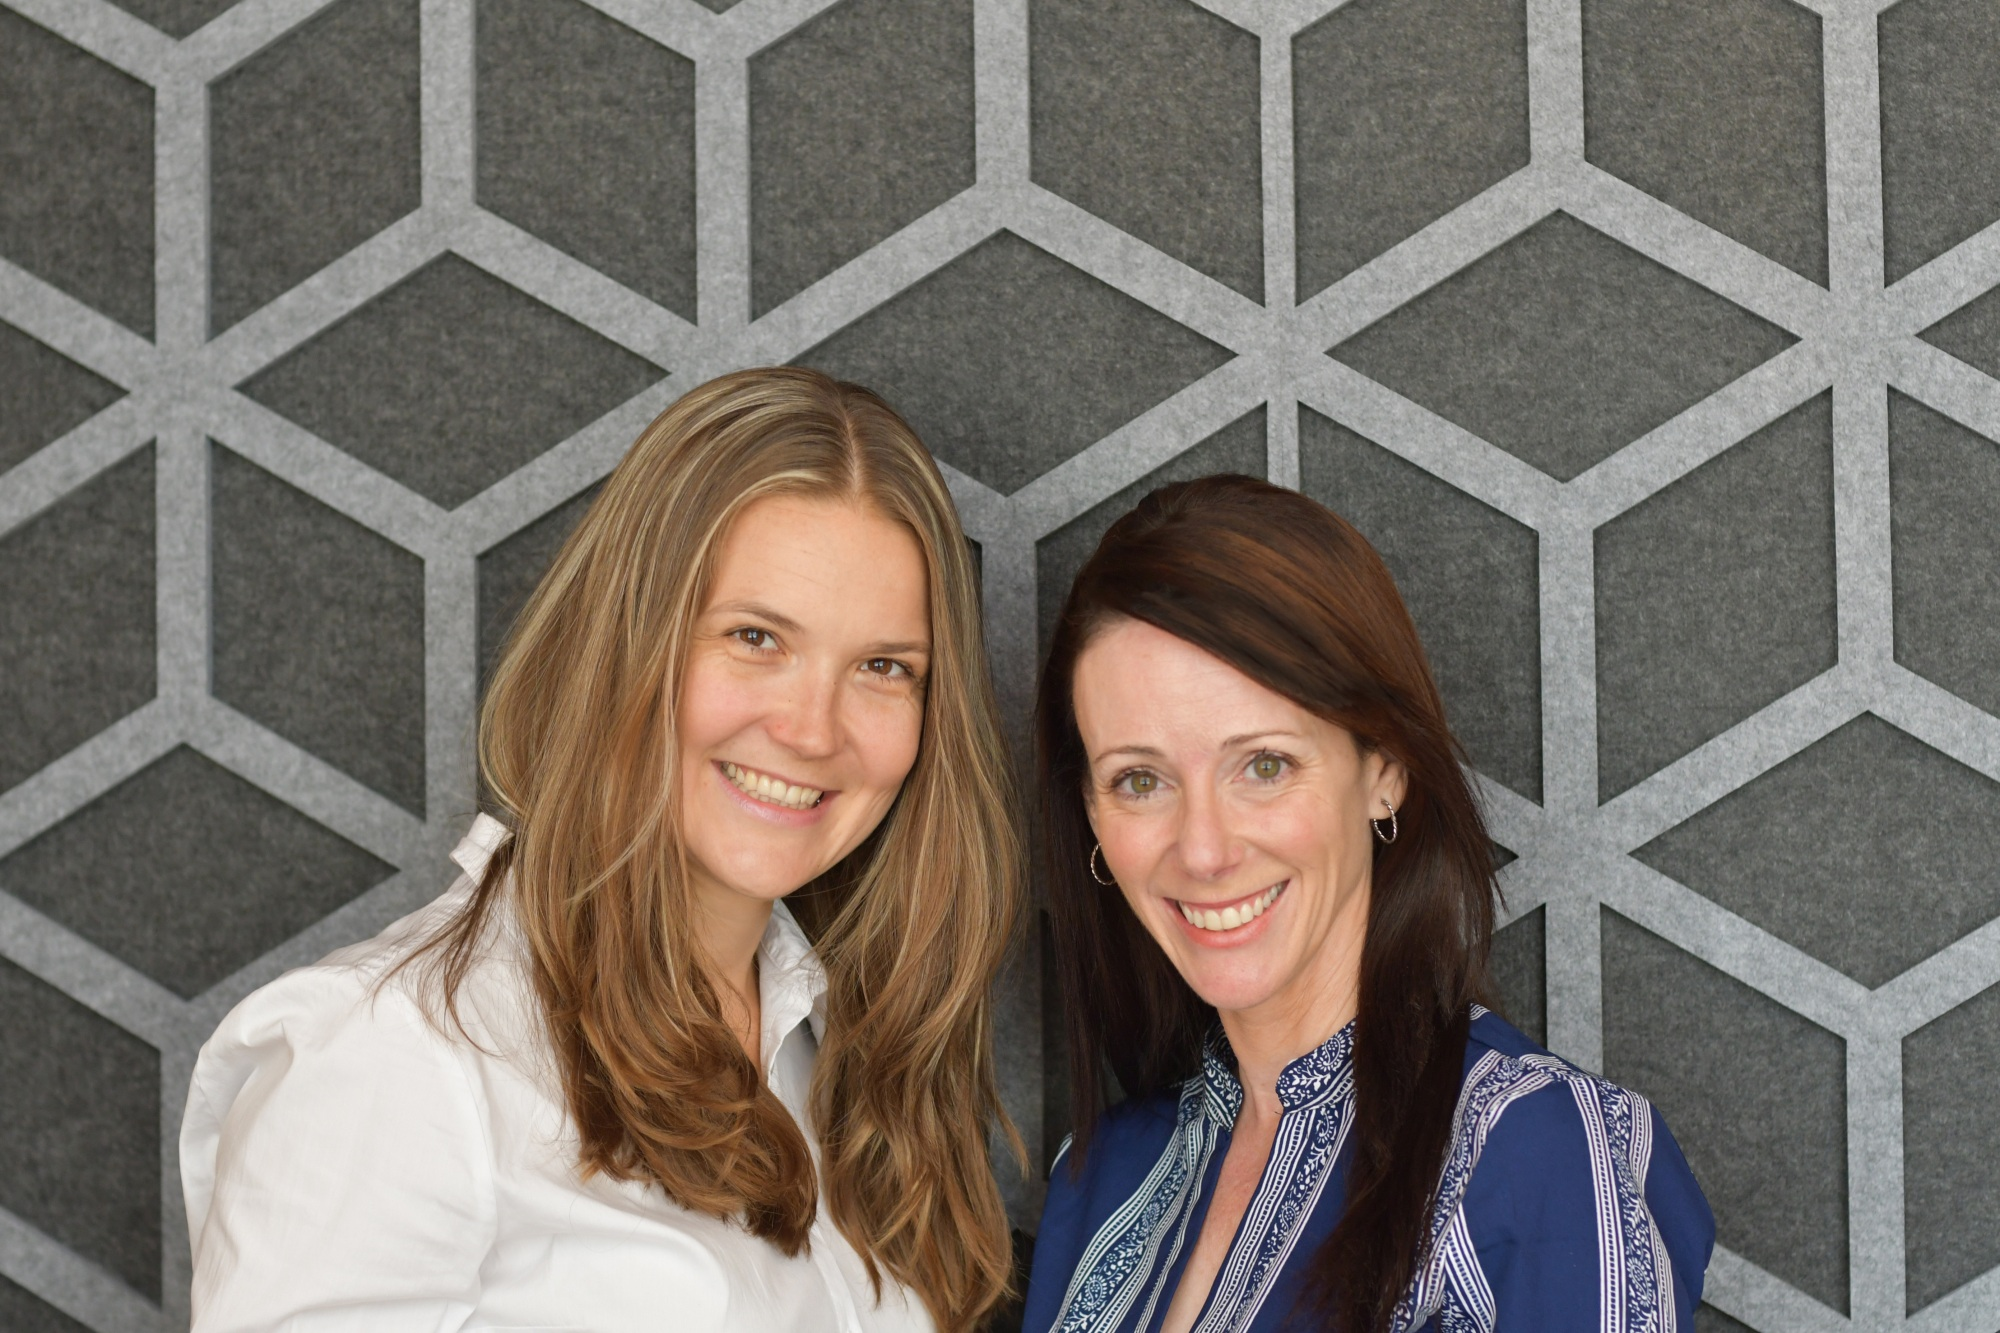 CNote co-founders Yuliya Tarasava (COO) and Catherine Berman (CEO)